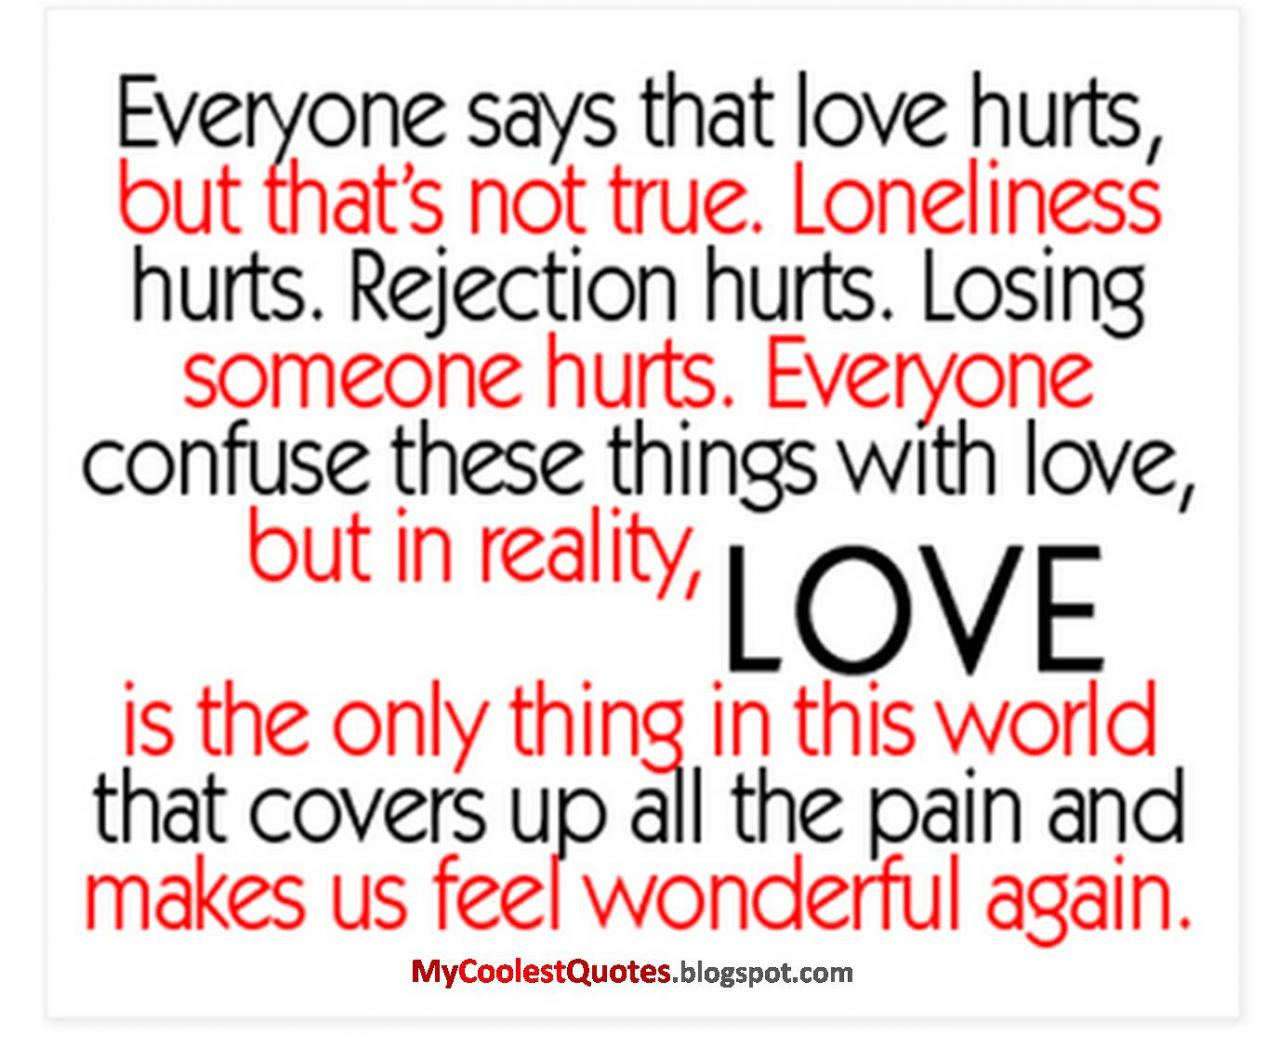 My Coolest Quotes Does Love Really Hurt